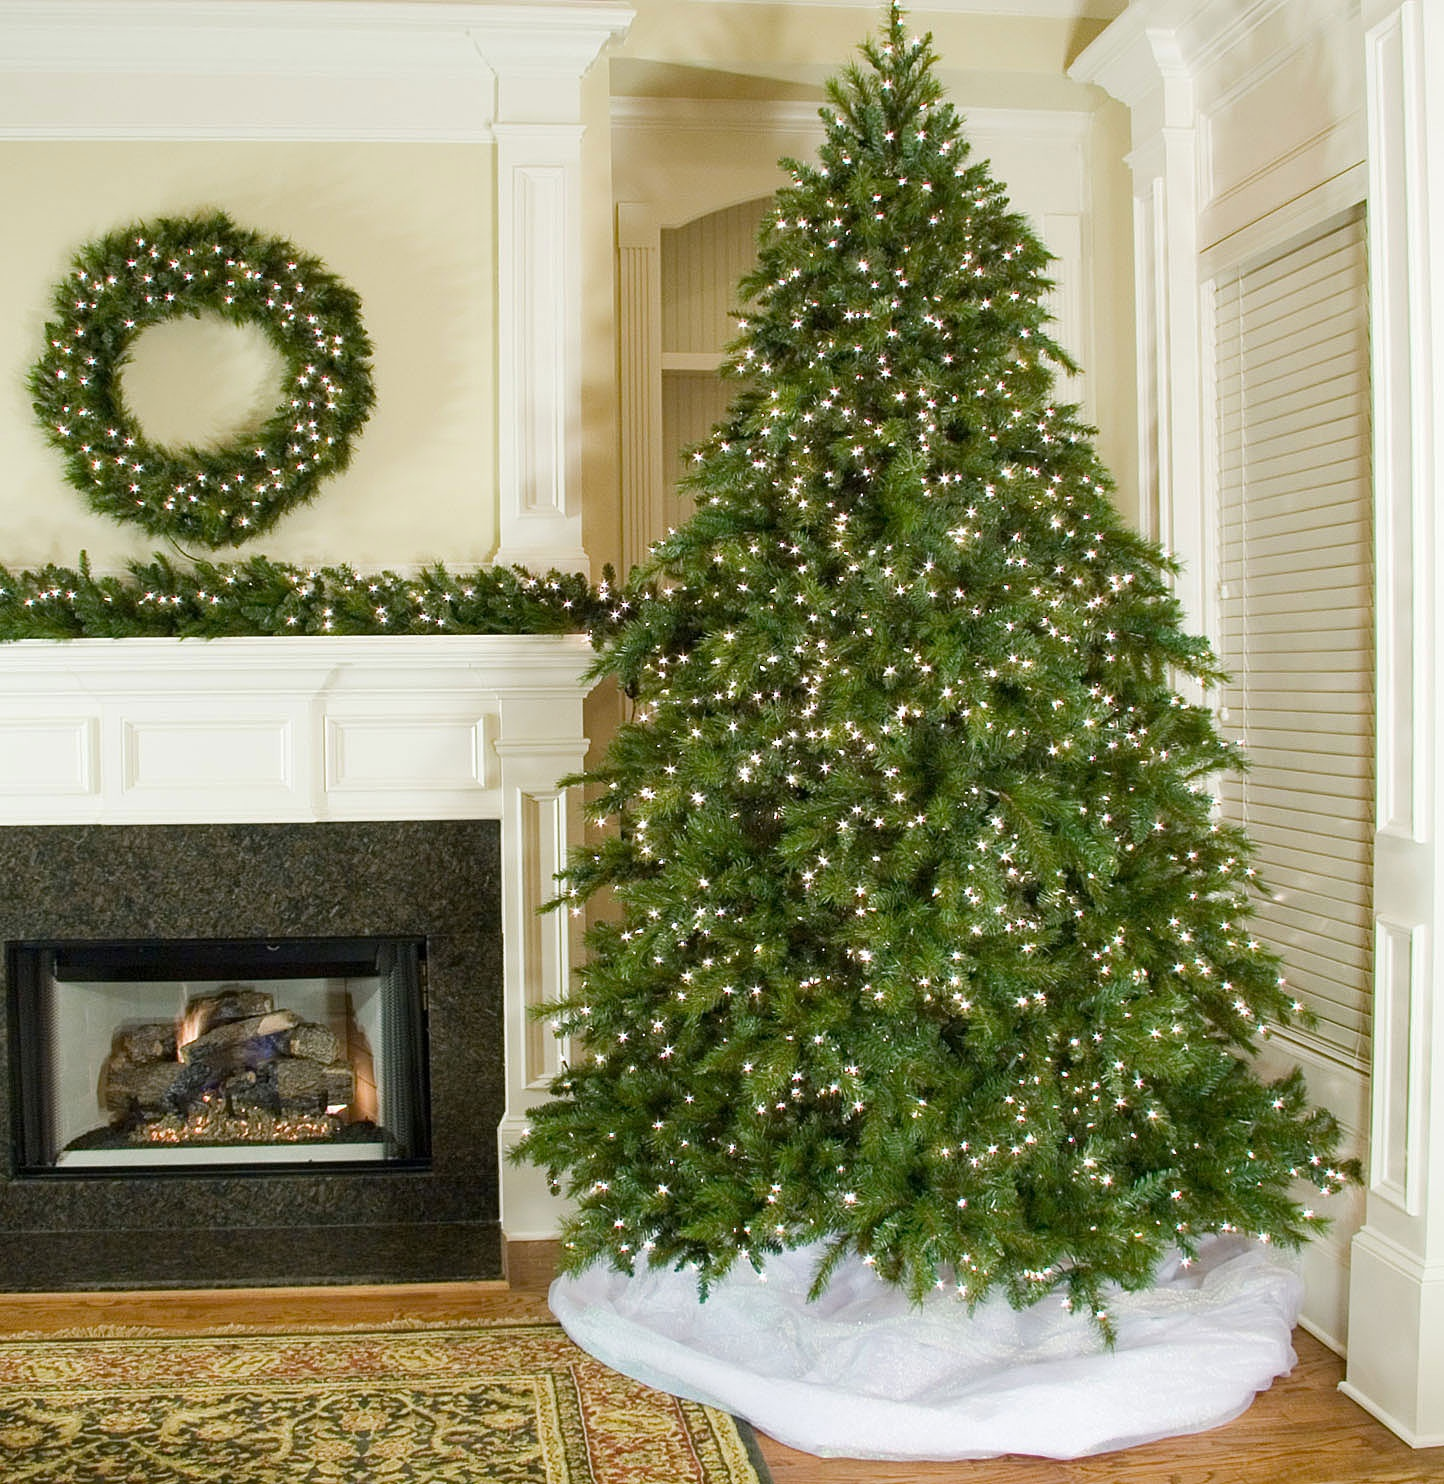 An Artificial Christmas Tree is a Great Way to Keep the Mess to a Minimum This Year at Christmas